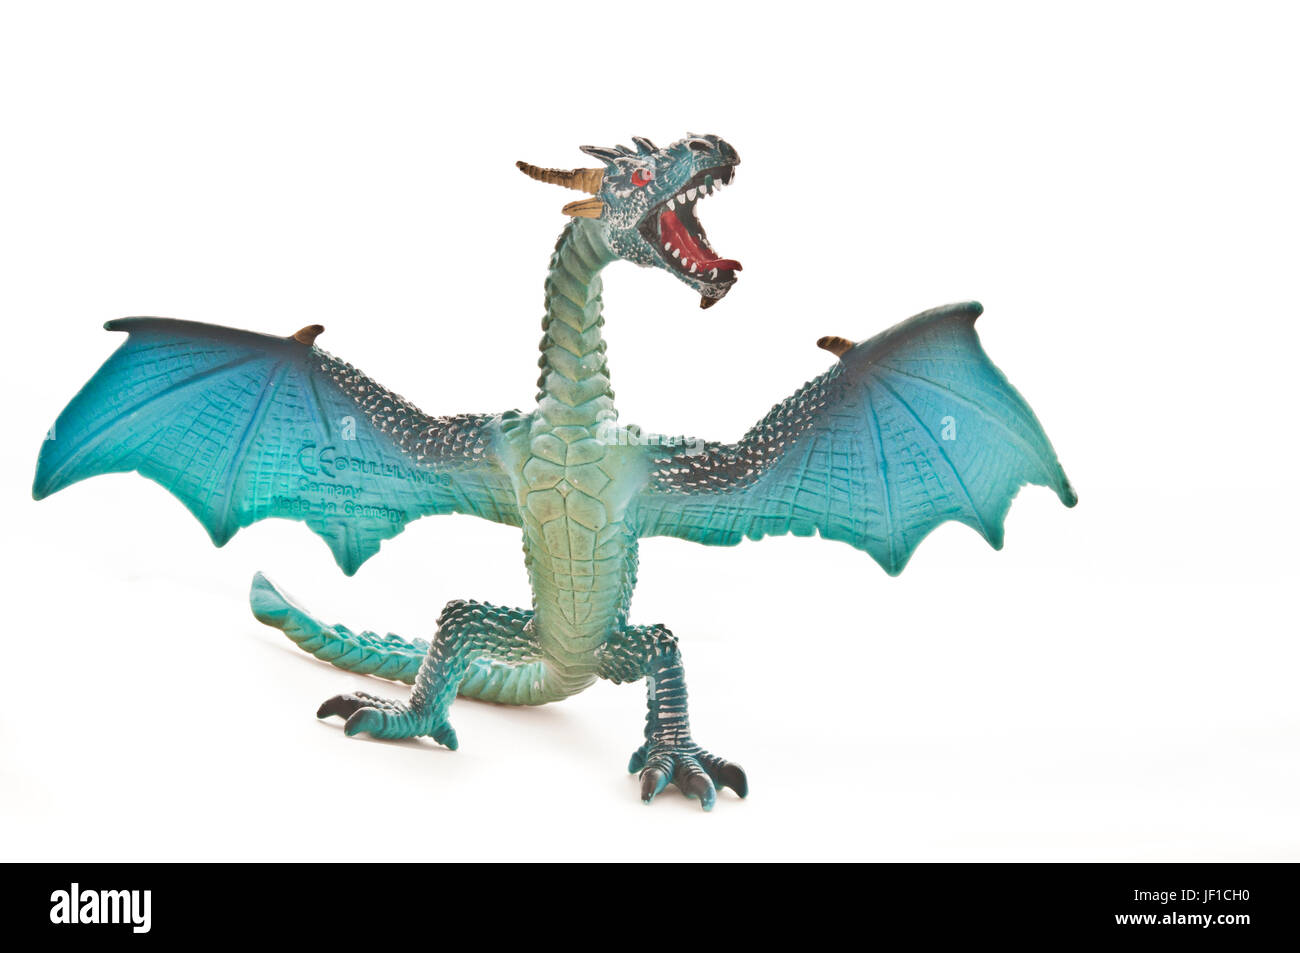 Toy Dragon Stock Photos & Toy Dragon Stock Images - Alamy